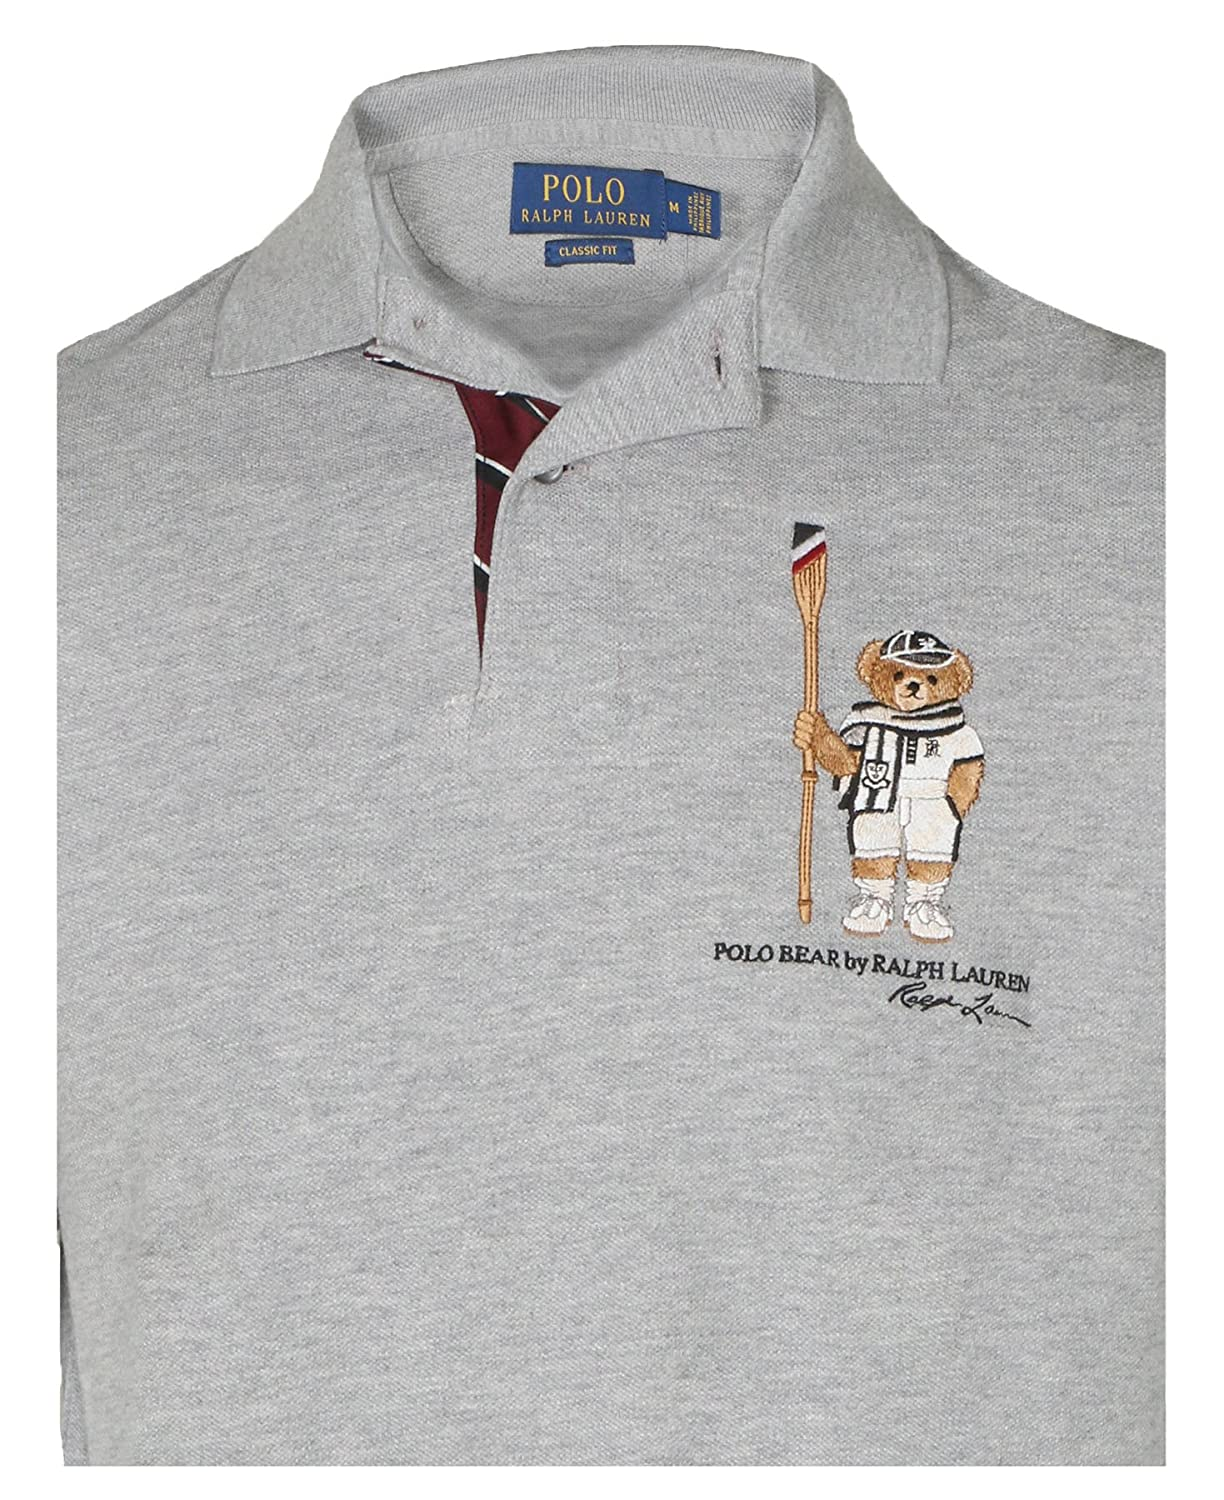 cf65595da Polo Ralph Lauren Men's's Limited Polo Bear Polo Shirt-HtrGrey/Boathouse at  Amazon Men's Clothing store: